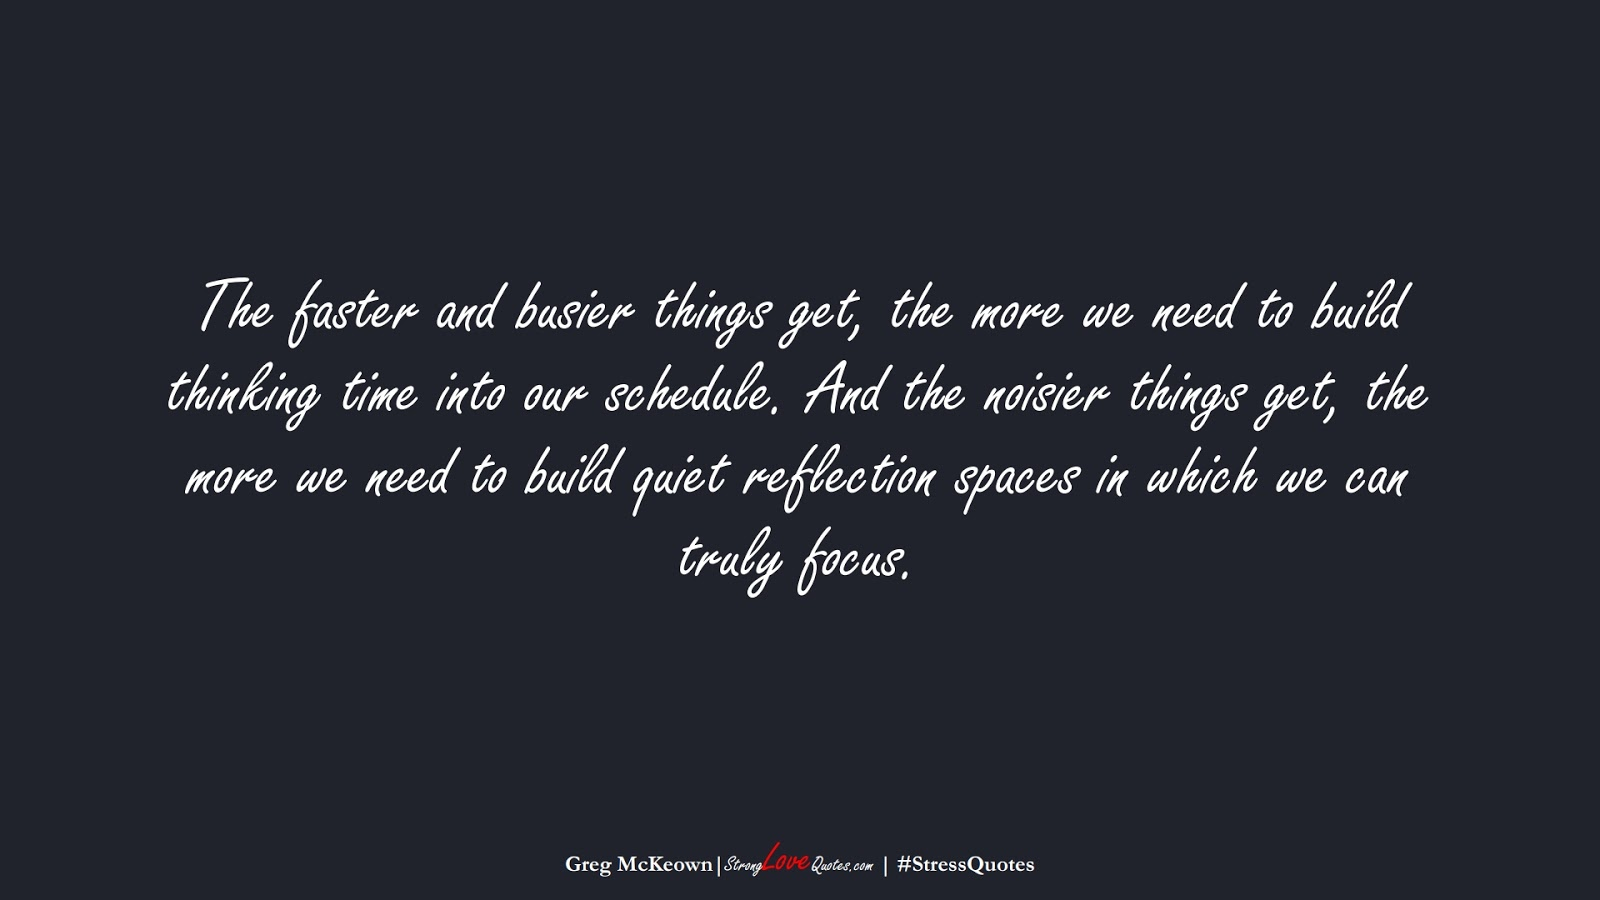 The faster and busier things get, the more we need to build thinking time into our schedule. And the noisier things get, the more we need to build quiet reflection spaces in which we can truly focus. (Greg McKeown);  #StressQuotes